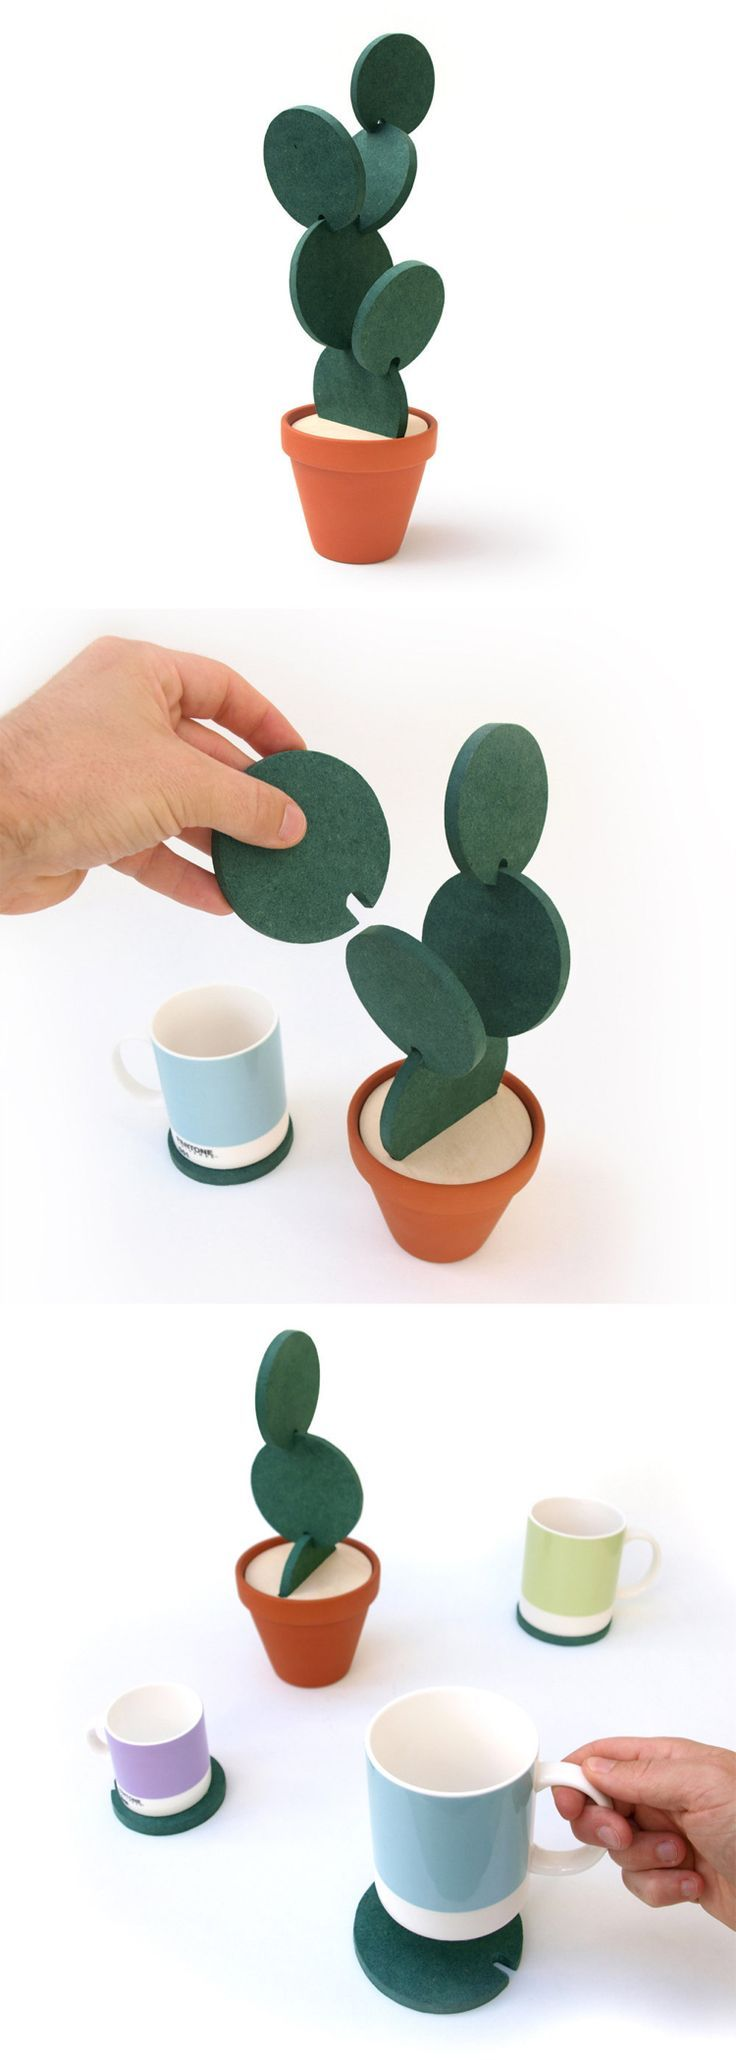 Cacti Coasters by designer Clive Roddy is a clever way to store your coasters.